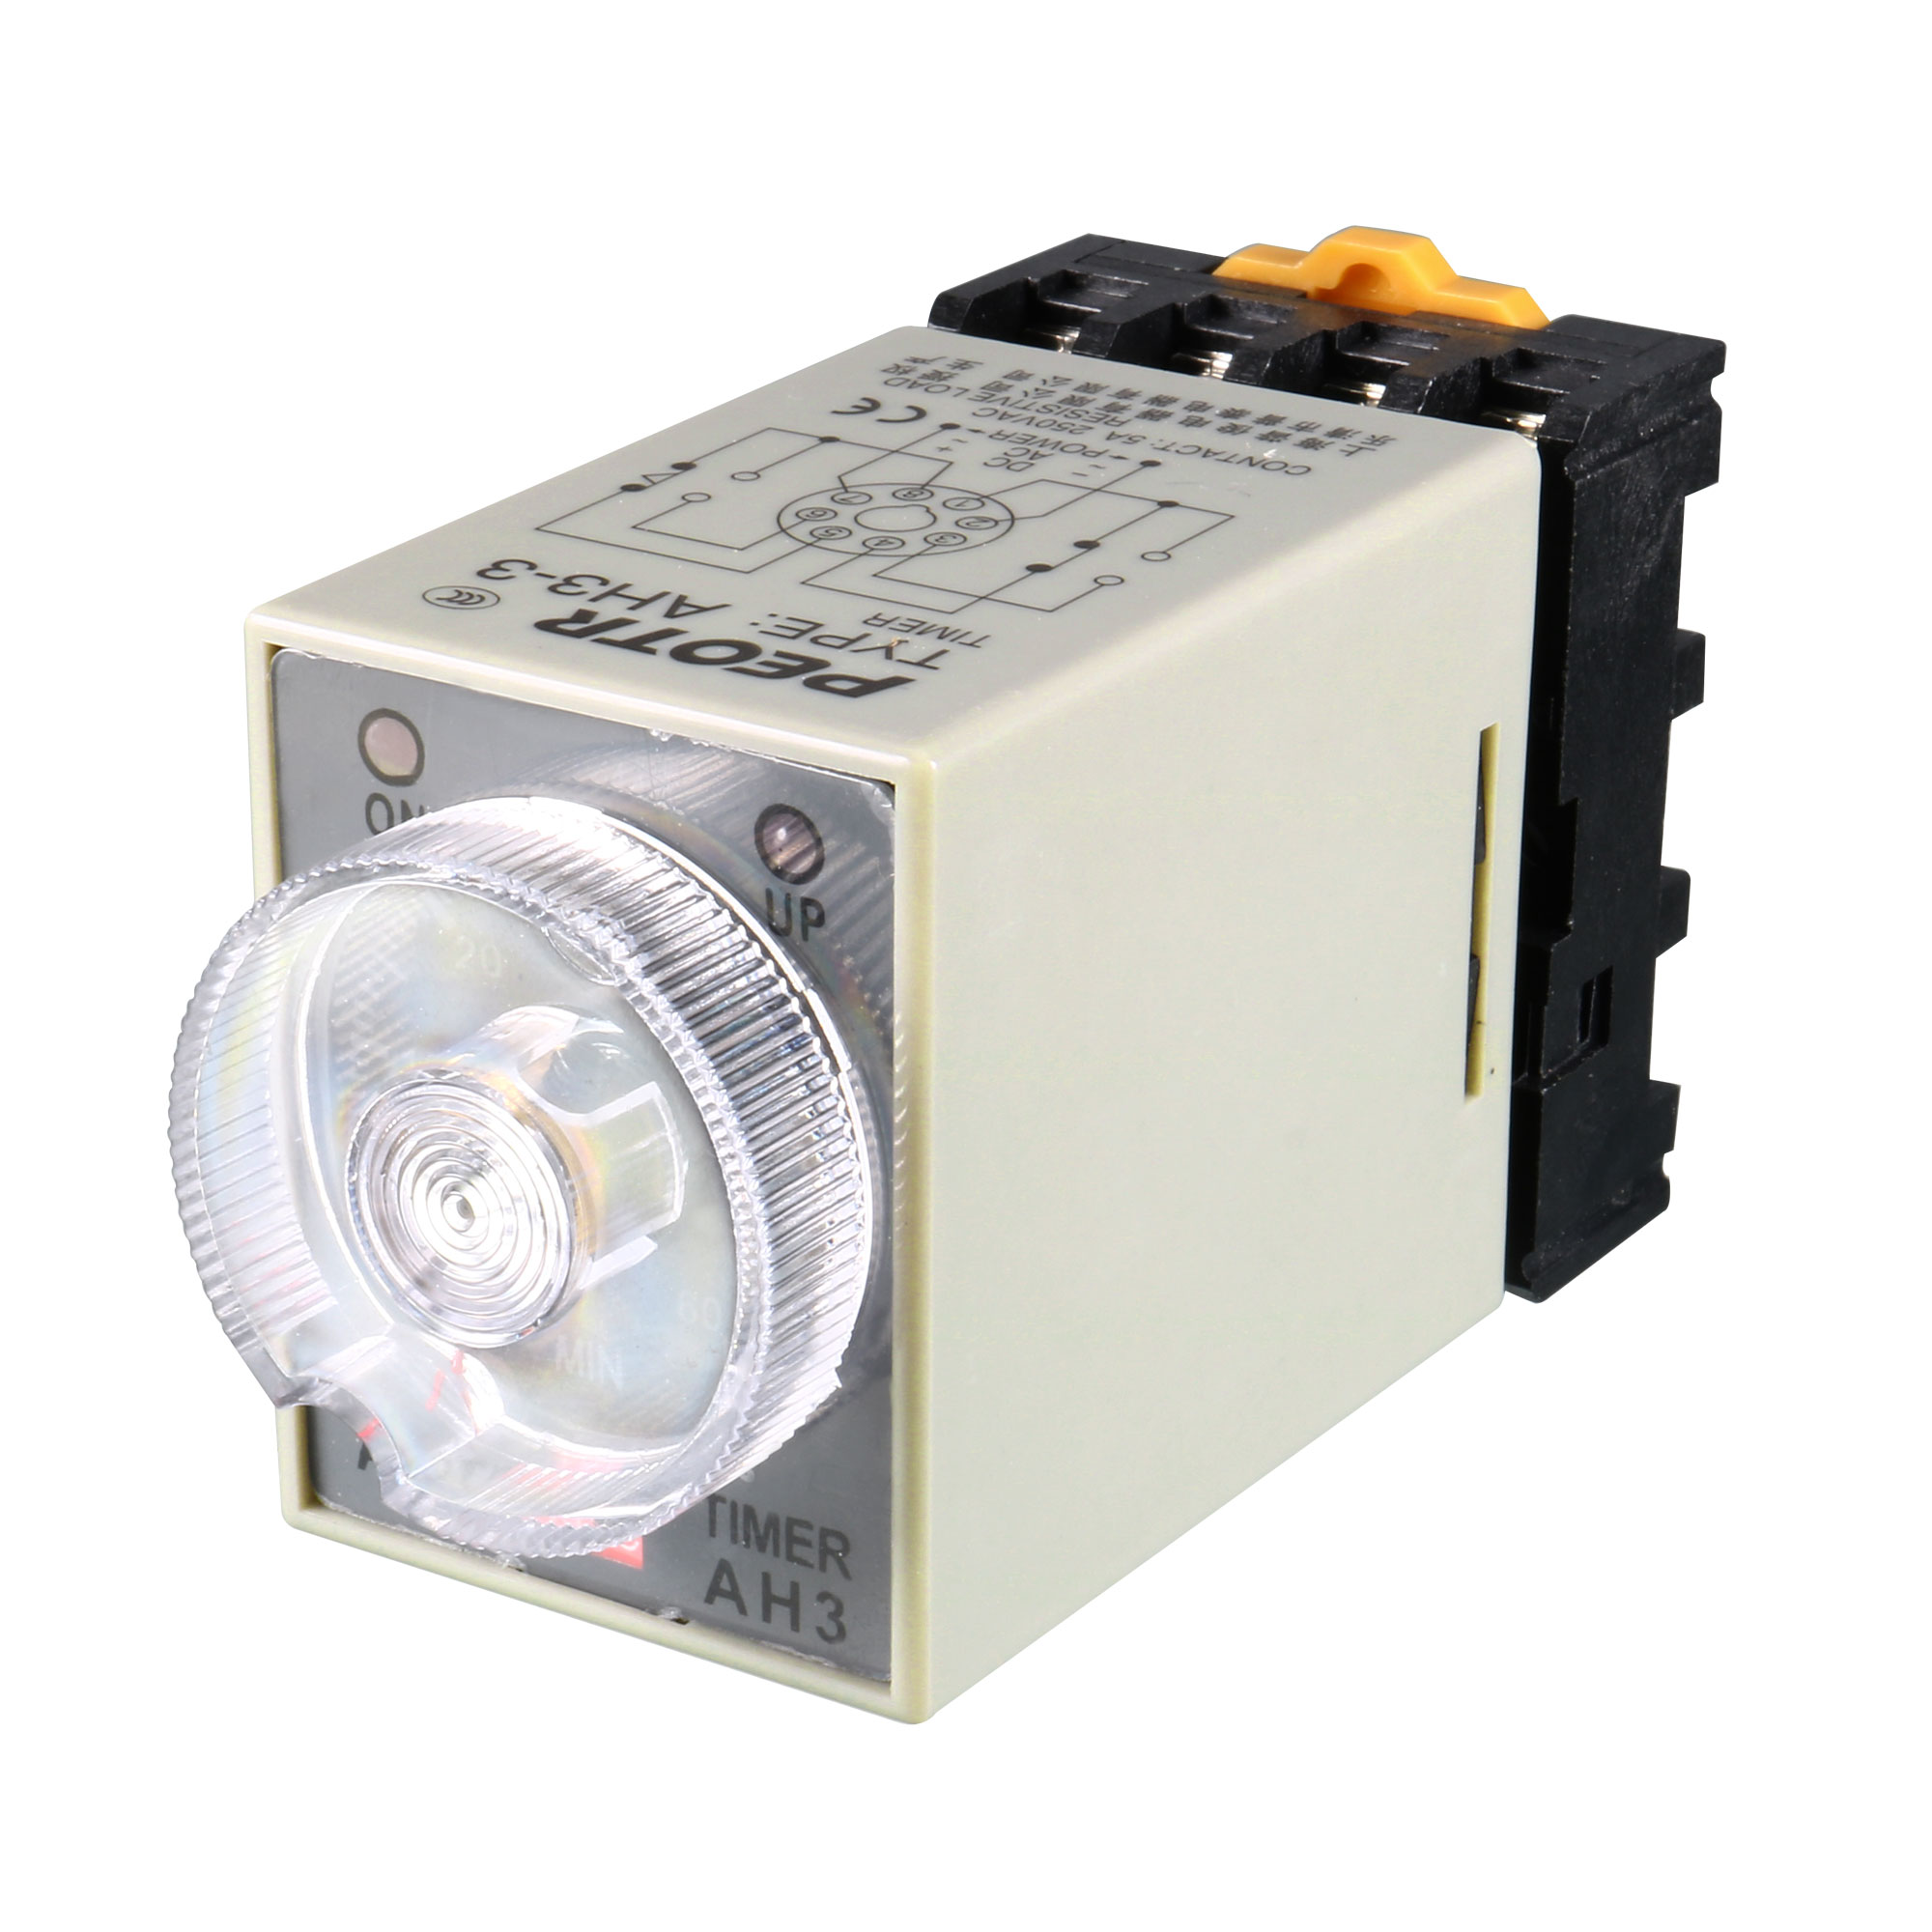 AC 110V 8P 0-60 Minutes Range Adjustable Delay Timer Time Relay AH3-3 + Base